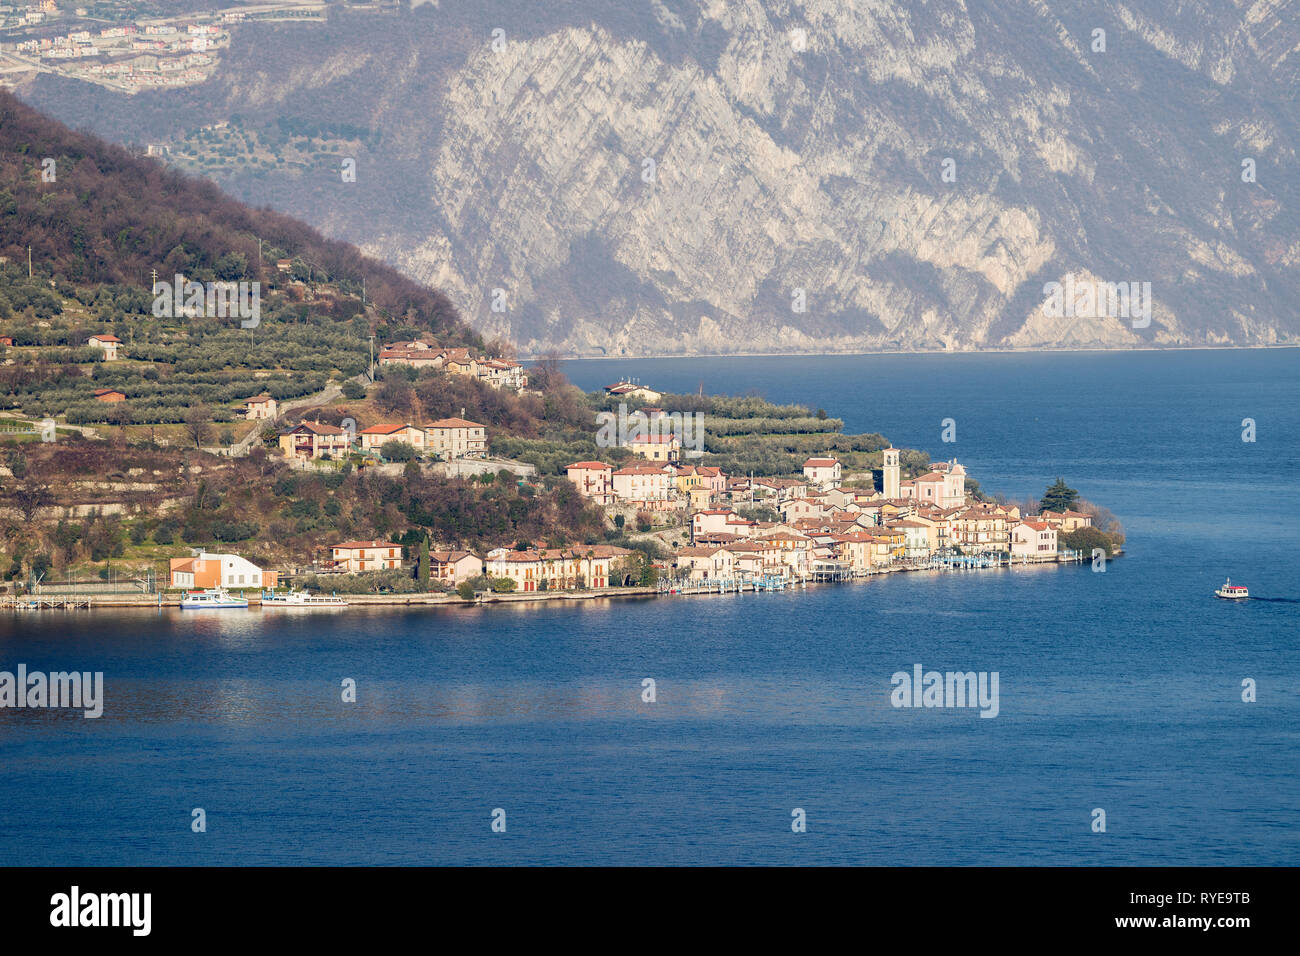 The village of Carzano on Monte Isola in the Iseo lake, Lombardy, Italy - Stock Image